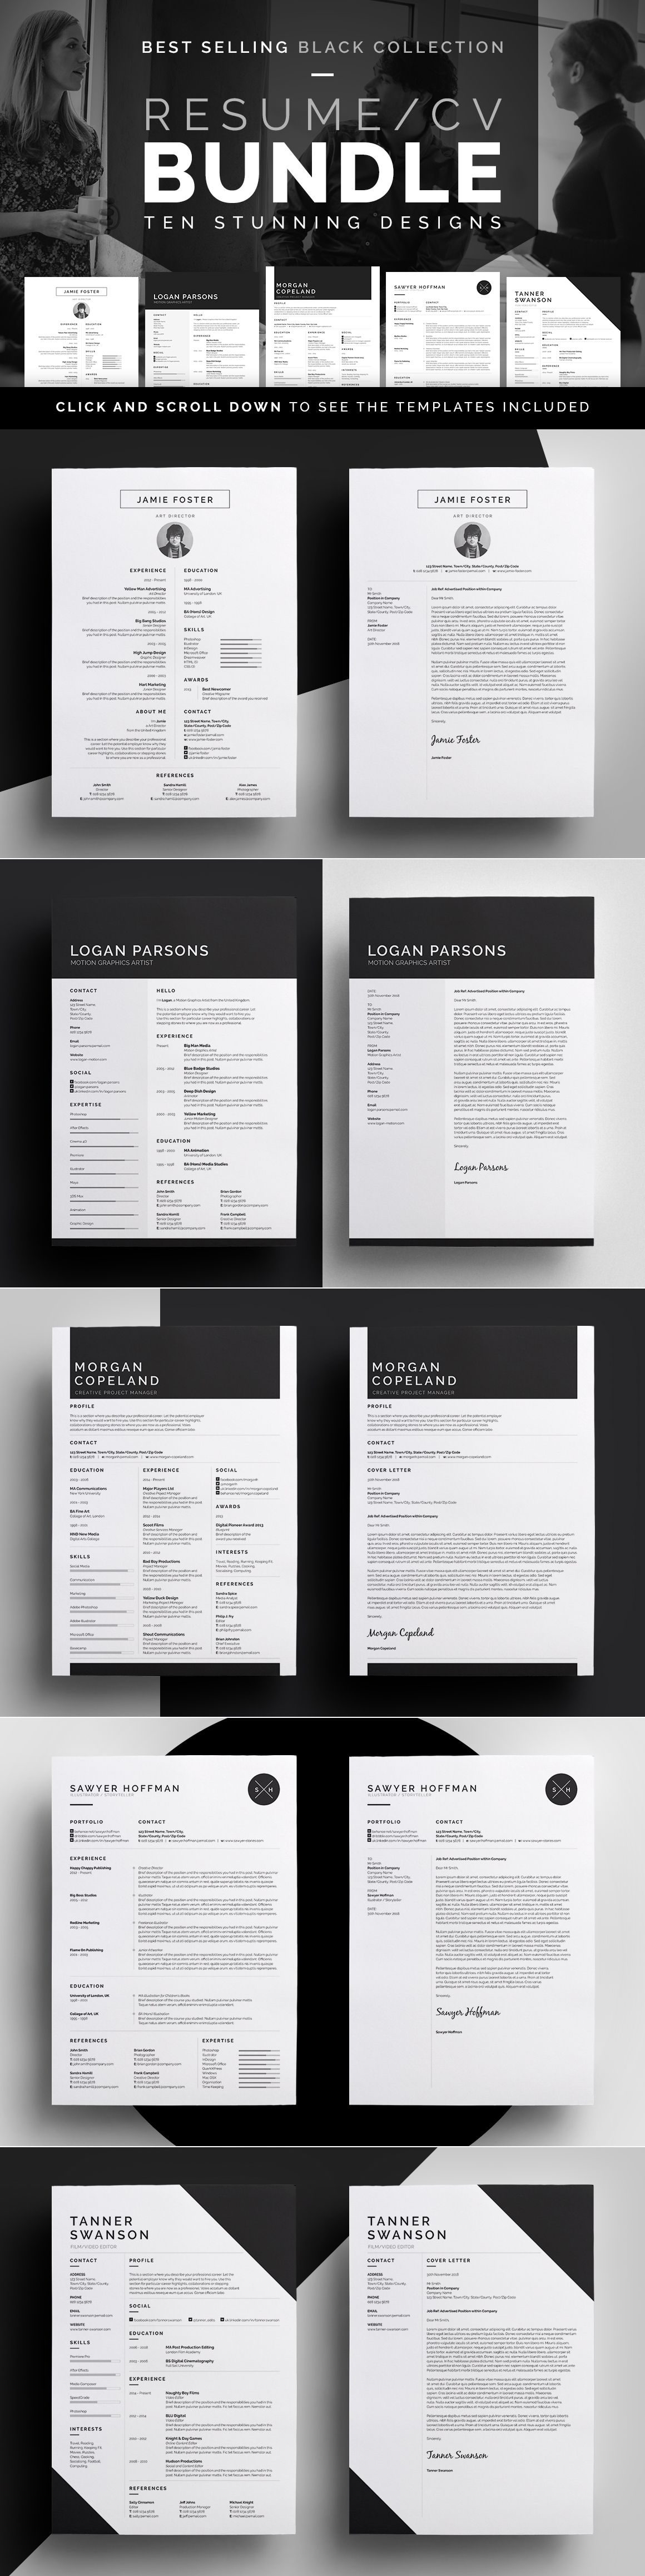 resume  cv bundle - complete career pack